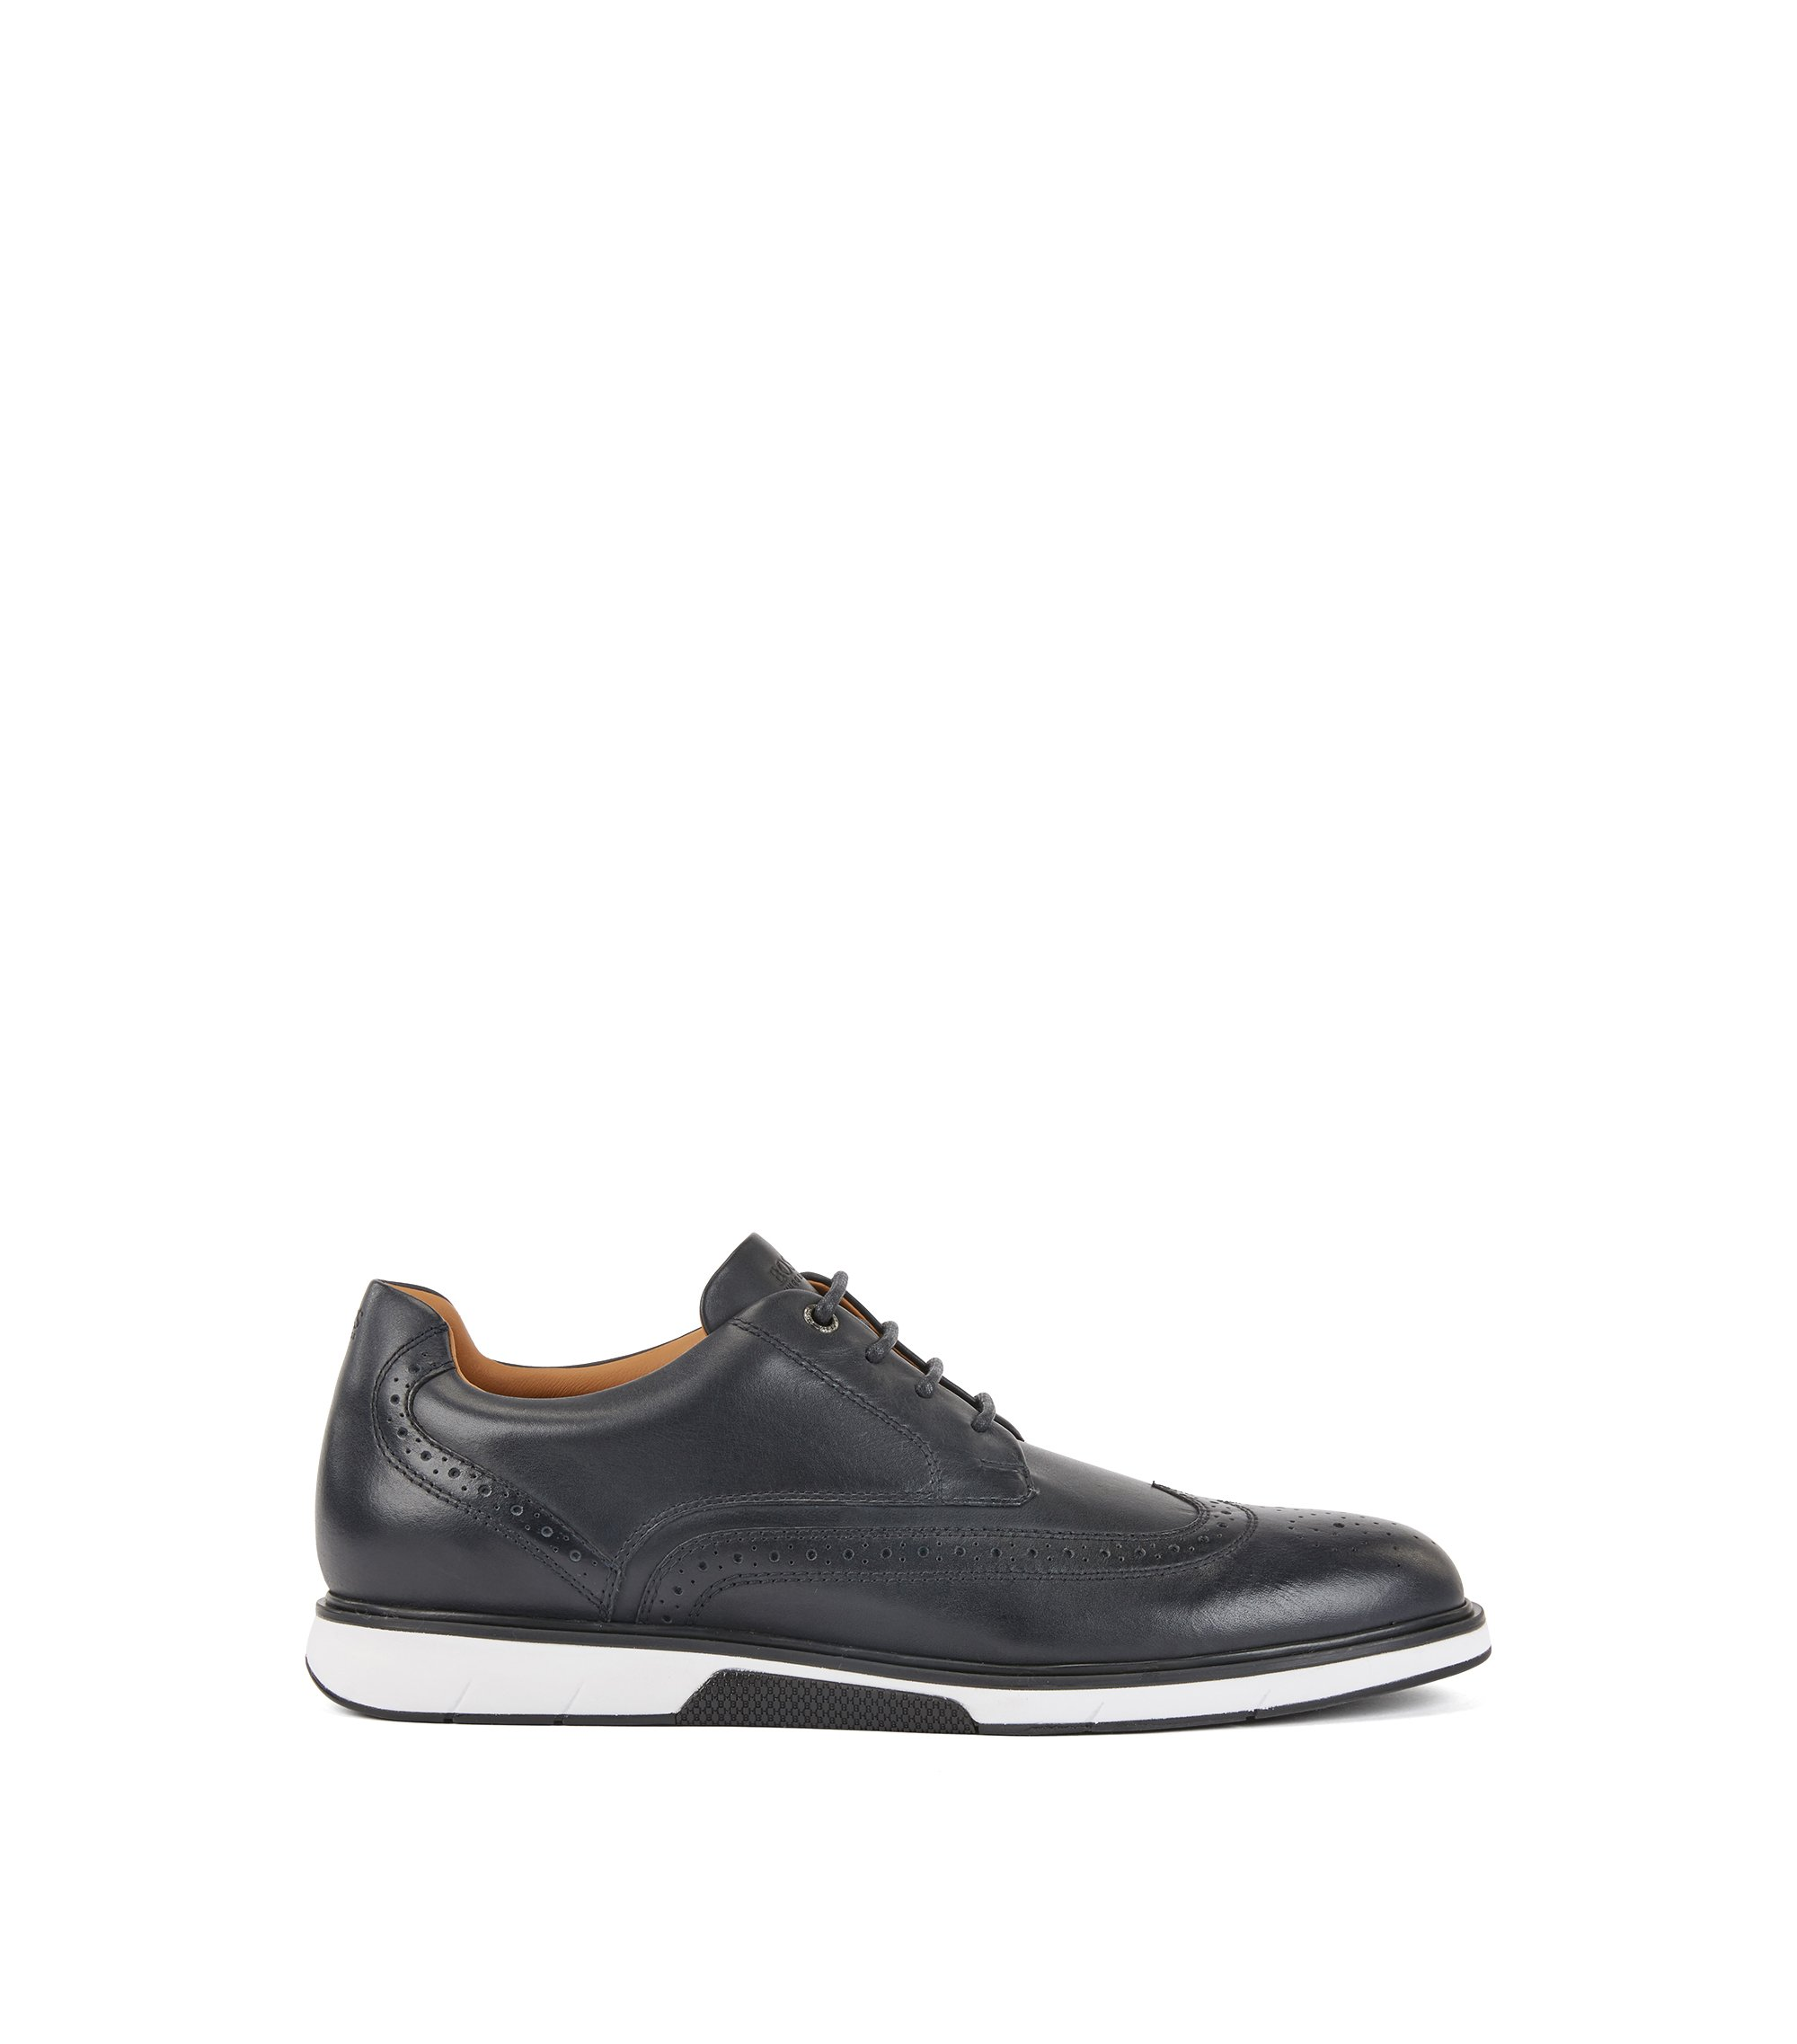 Leather Derby shoes with trainer-style sole, Bleu foncé